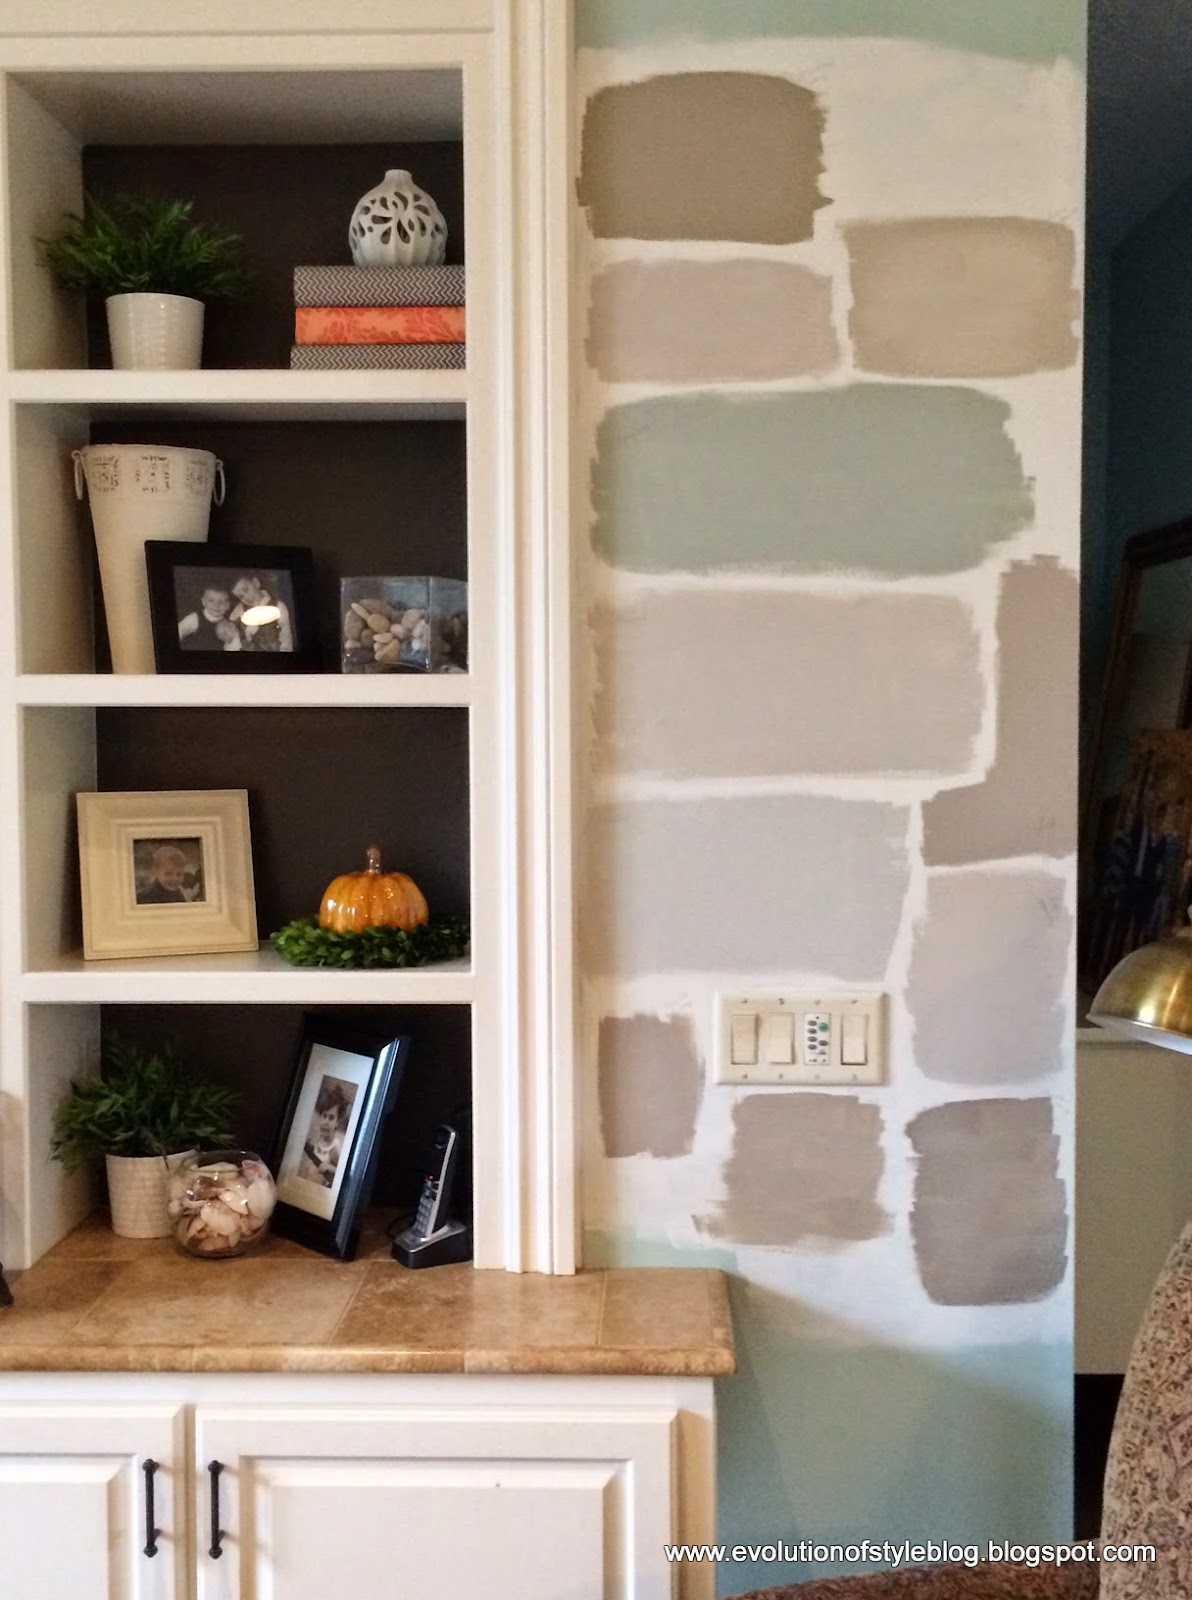 However When It Comes To Choosing A Color That Can Be Daunting Process Which Requires Input From Facebook Friends Perhaps Your Walls Look Something